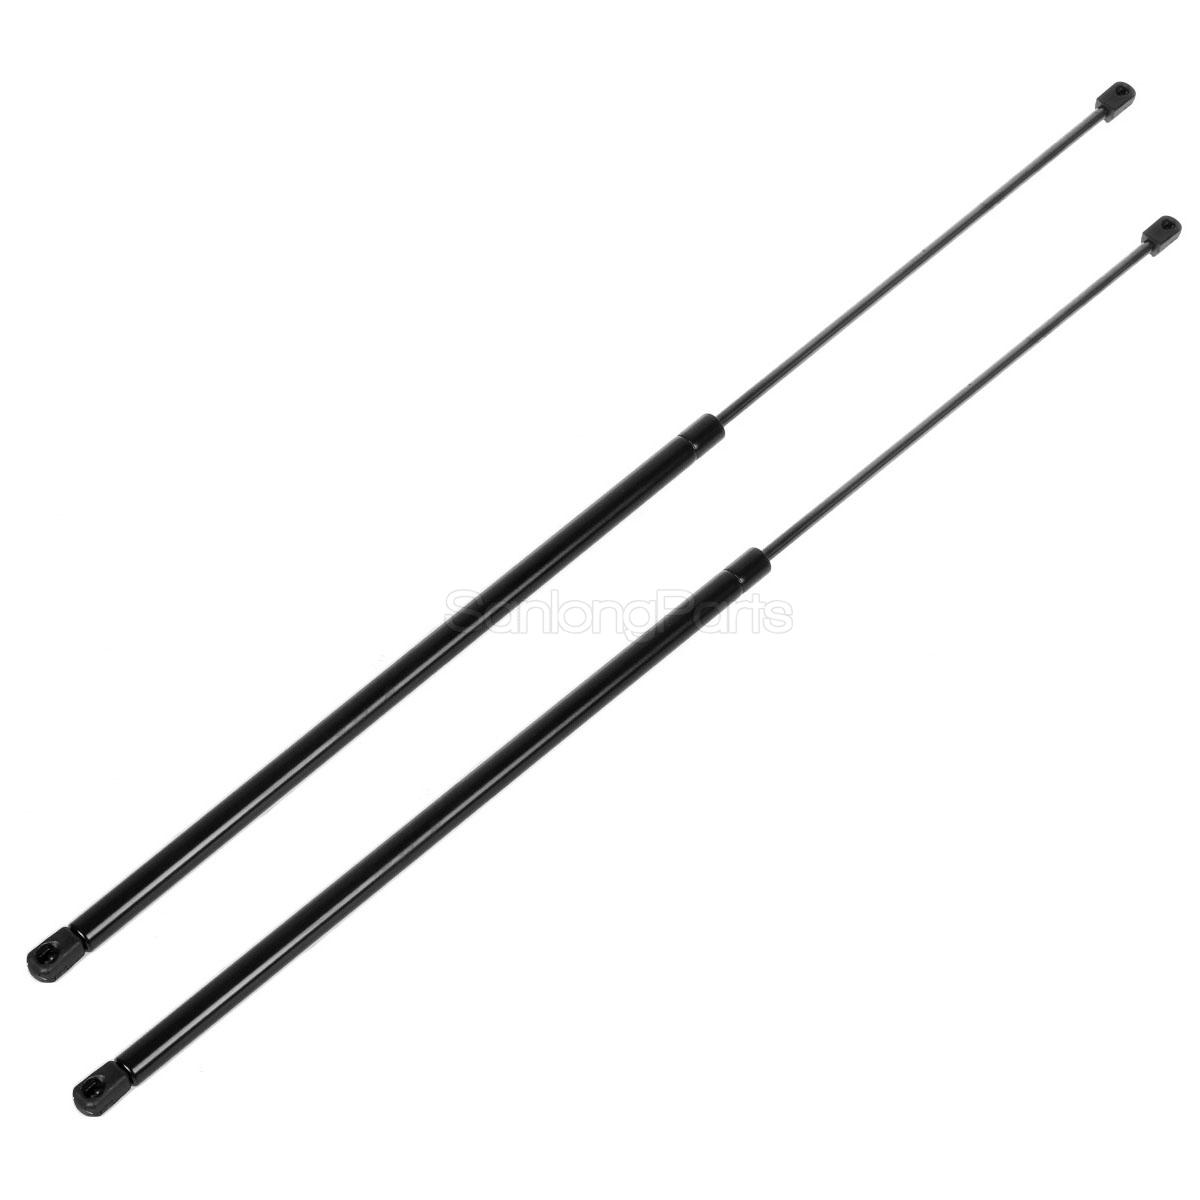 1Pair Front Hood Lift Supports Shocks Struts For Buick